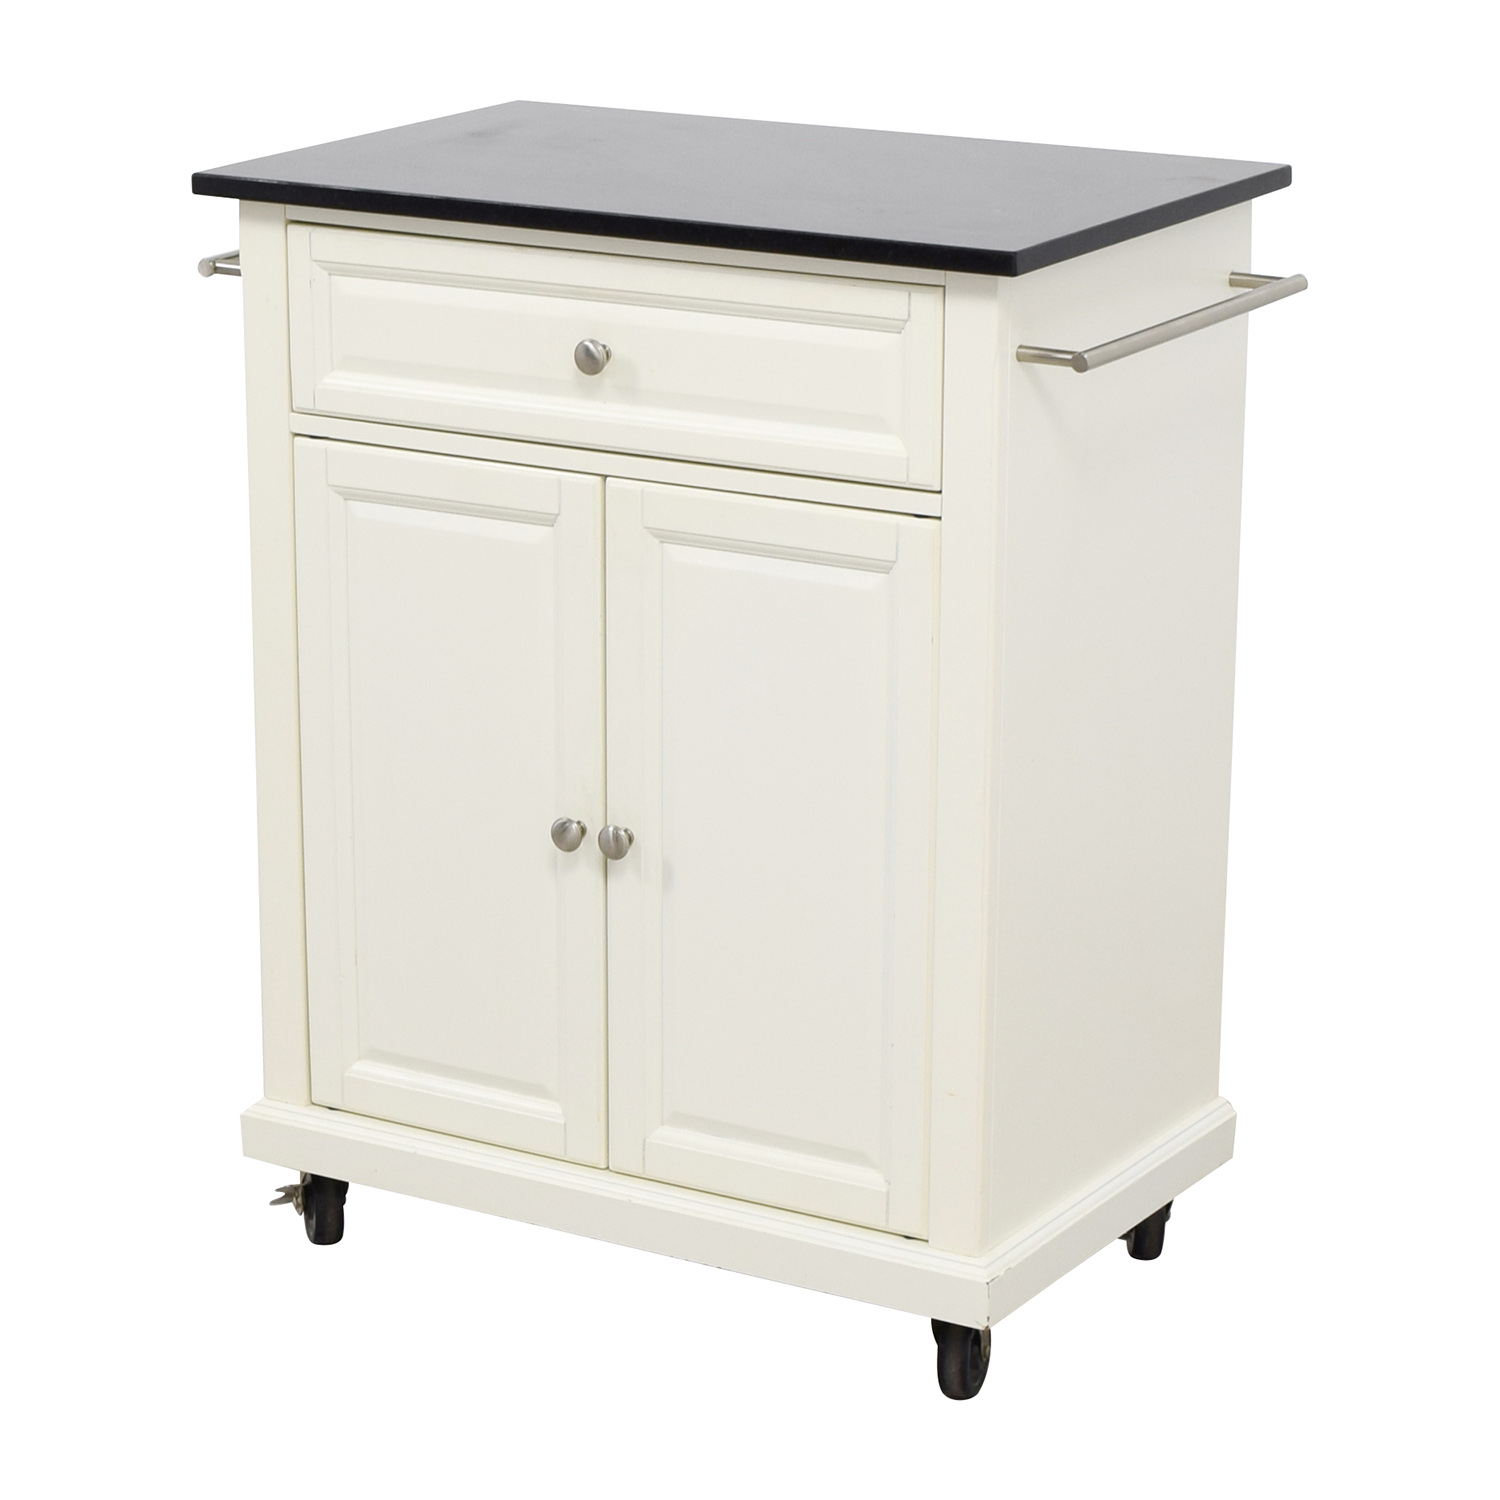 buy Crosley Furniture Crosley Furniture White Kitchen Island Counter on Castors online